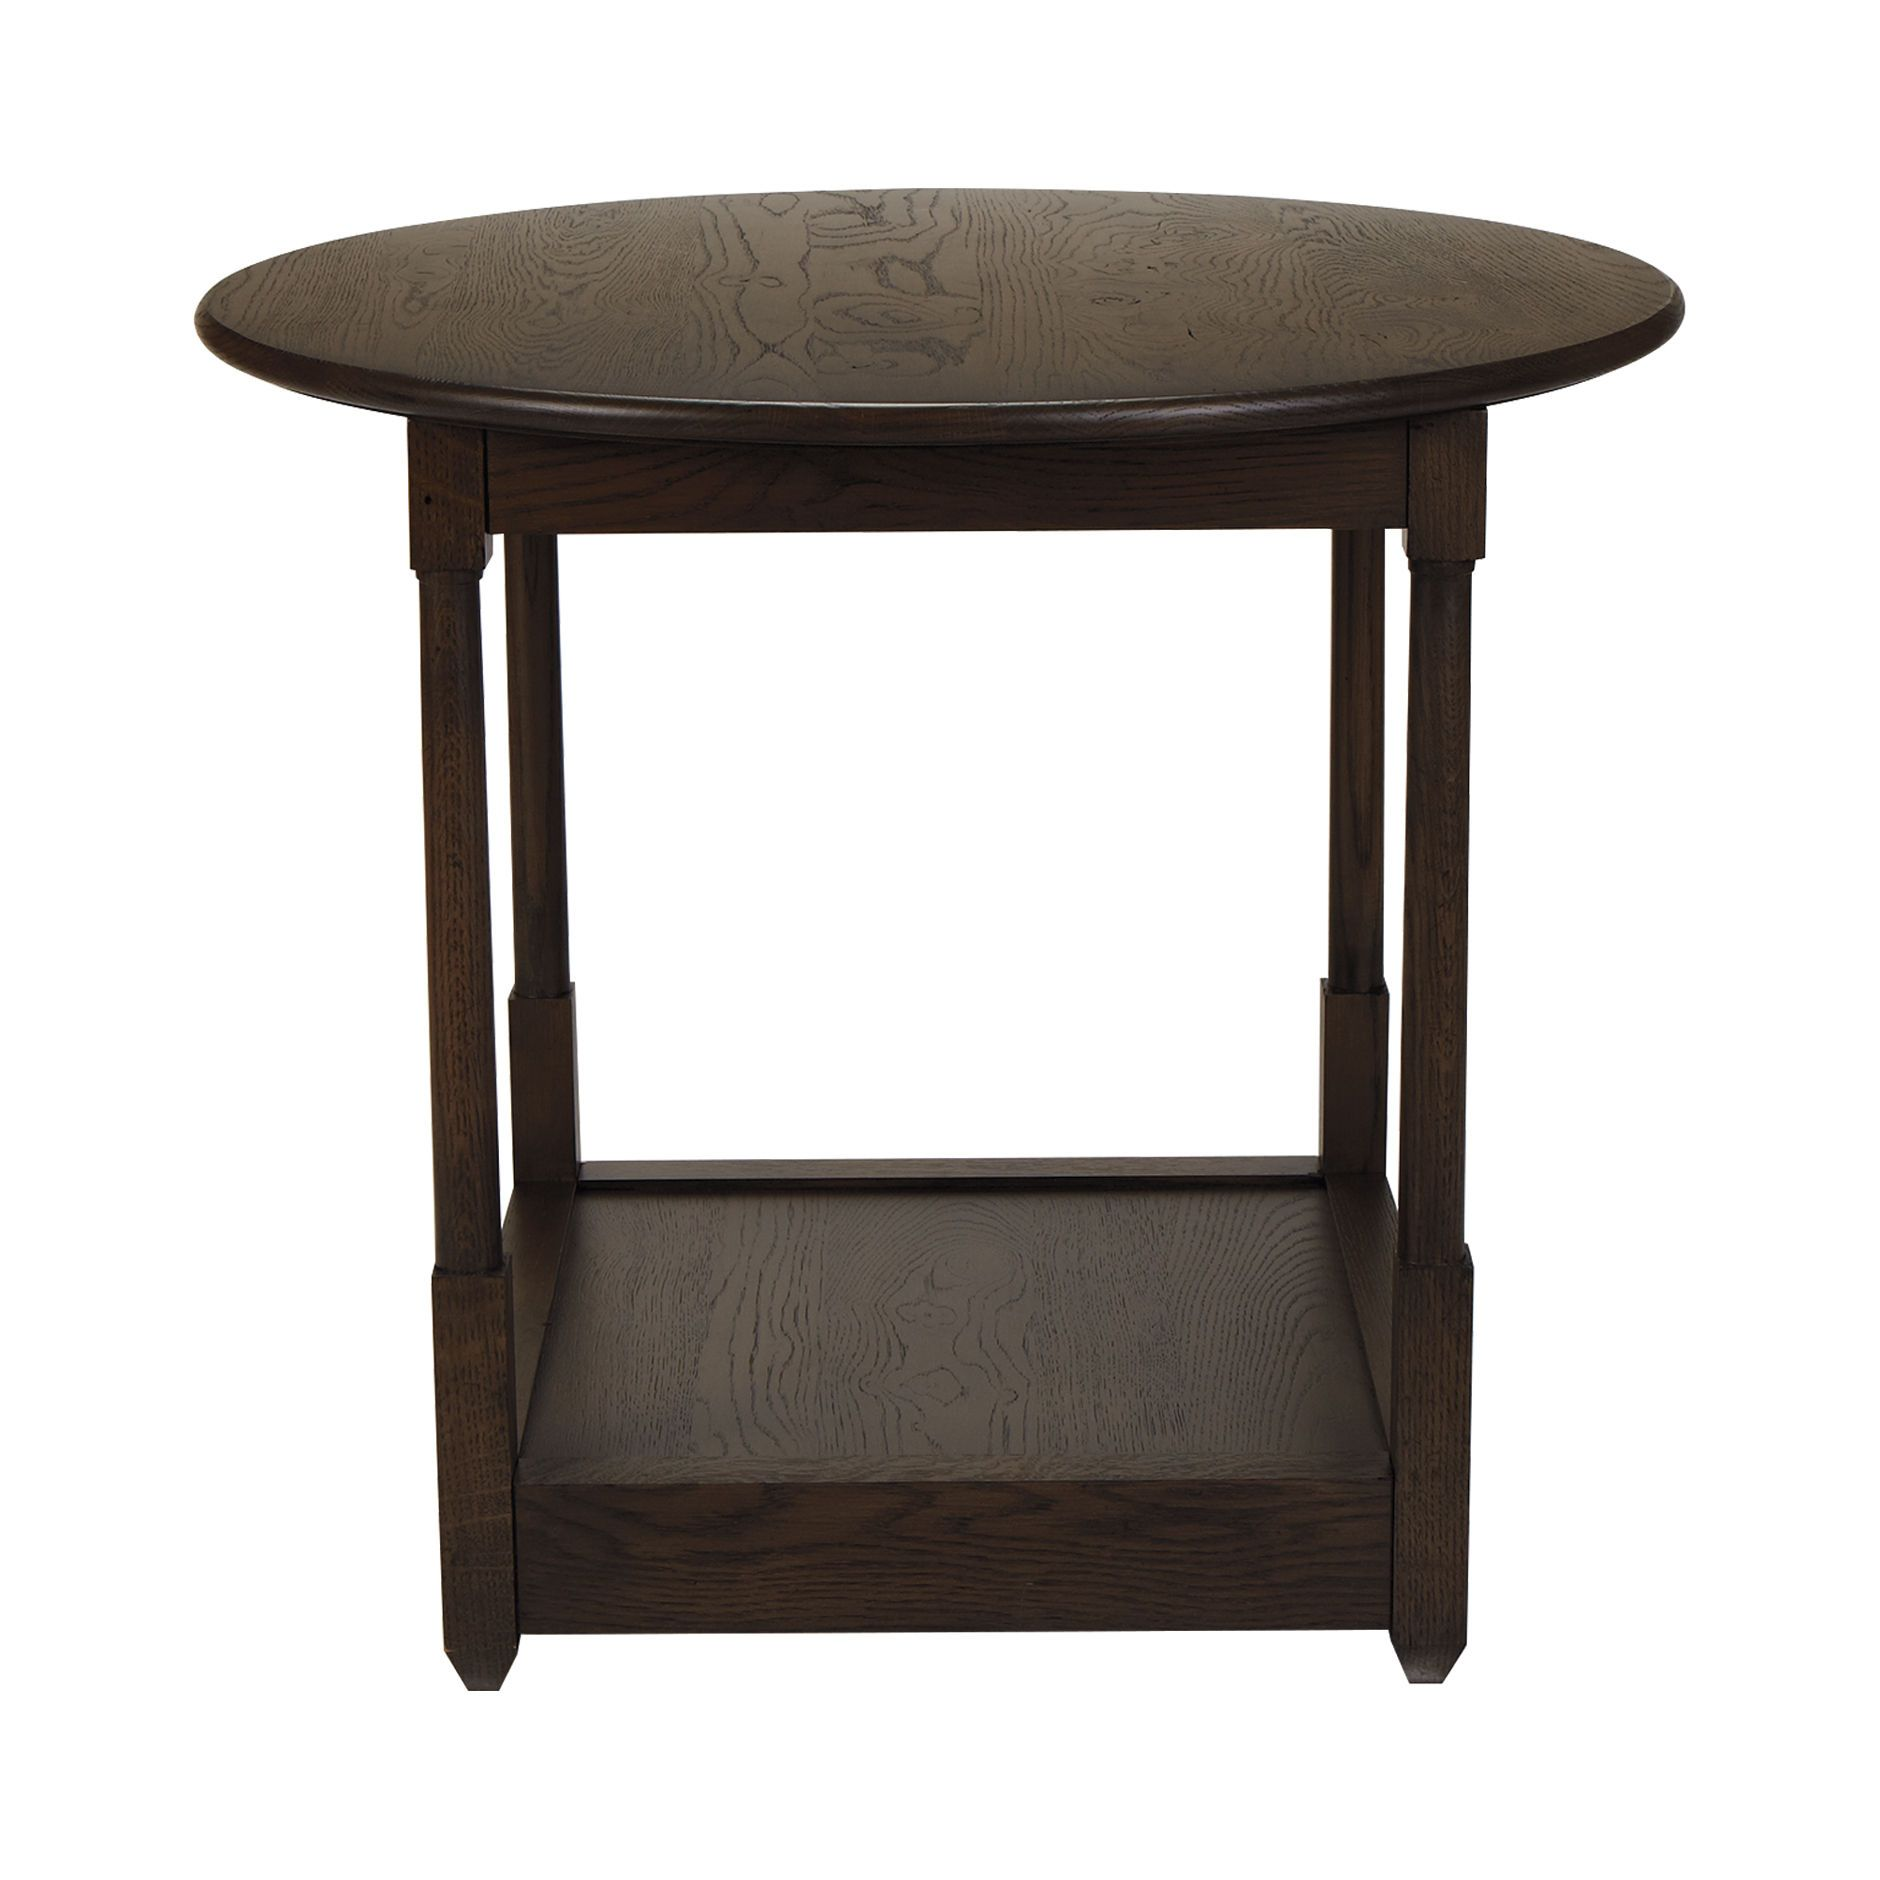 new introduction for fall freya round side table ethan accent allen pair tables united furniture art deco lamps ikea garden sheds pottery barn tanner coffee lamp base pier baskets